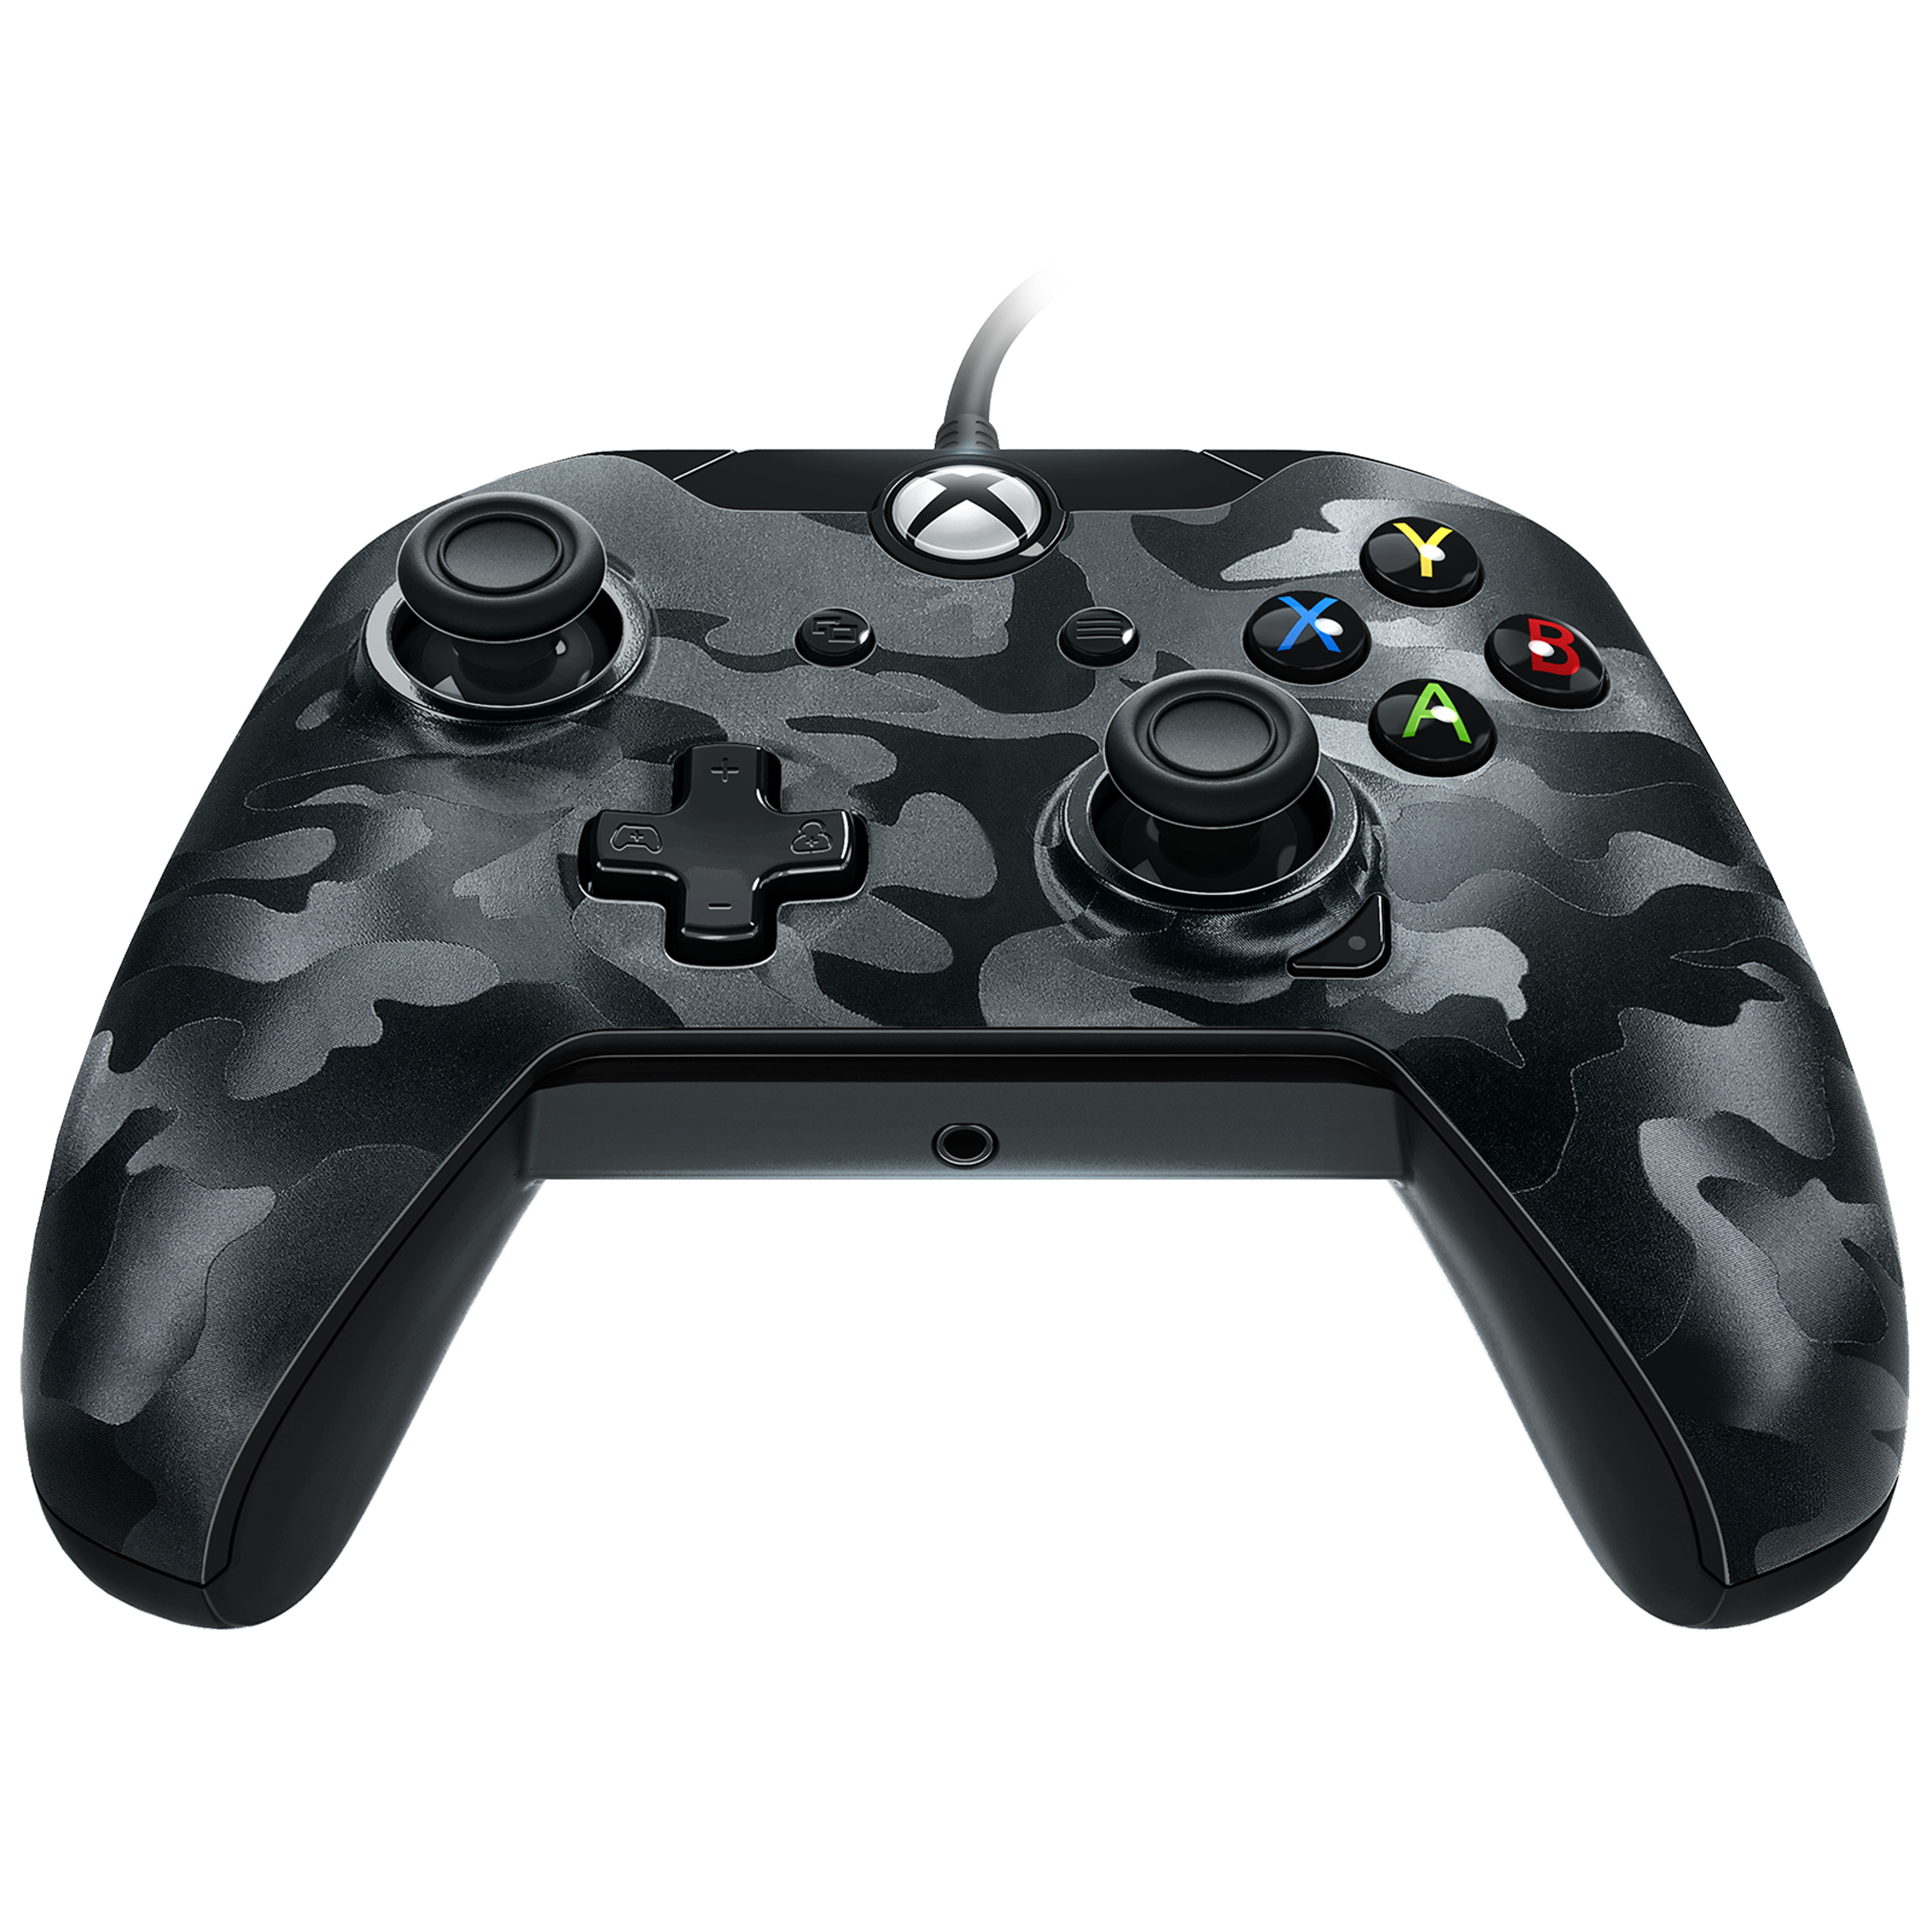 Pdp Stealth Series Wired Controller For Xbox One Xbox One X And